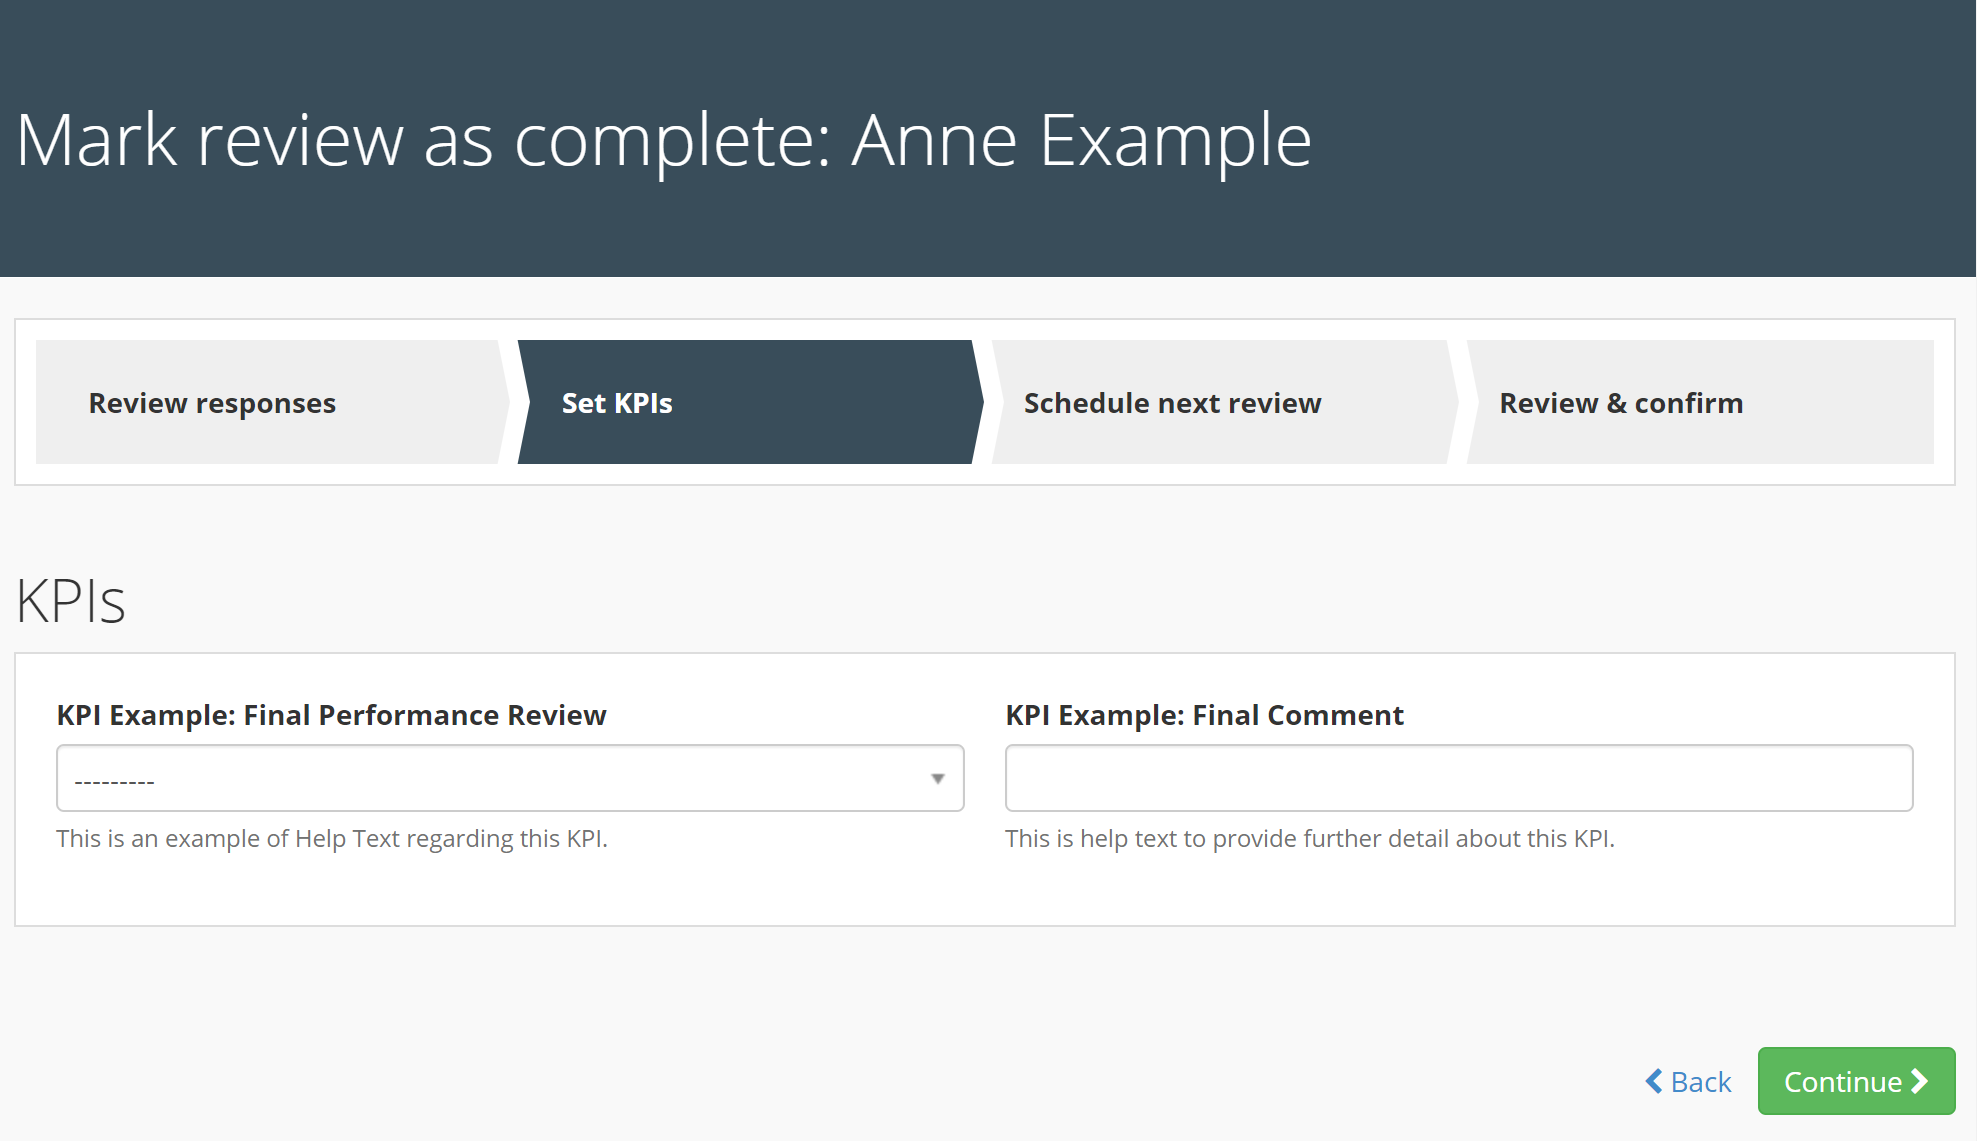 Image of both KPI examples side by side in the final Completion Form of the Performance Review. The help text is automatically displayed beneath the entry field for each KPI.